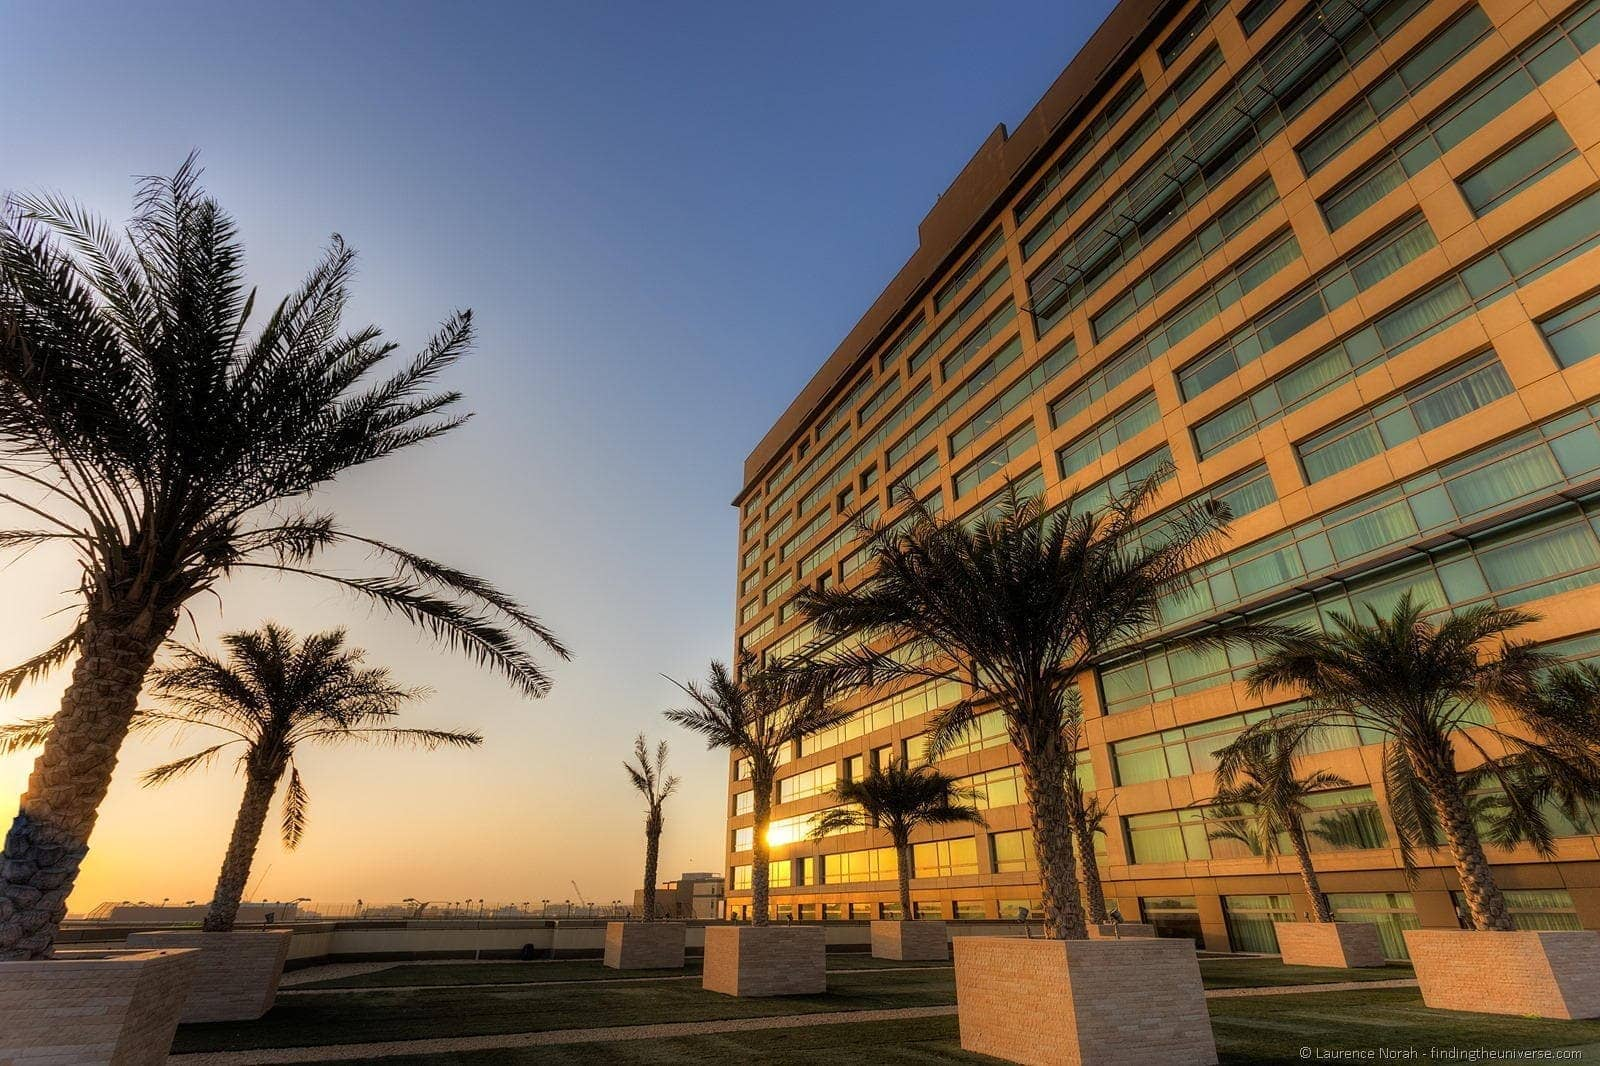 Sunrise outside Rotana